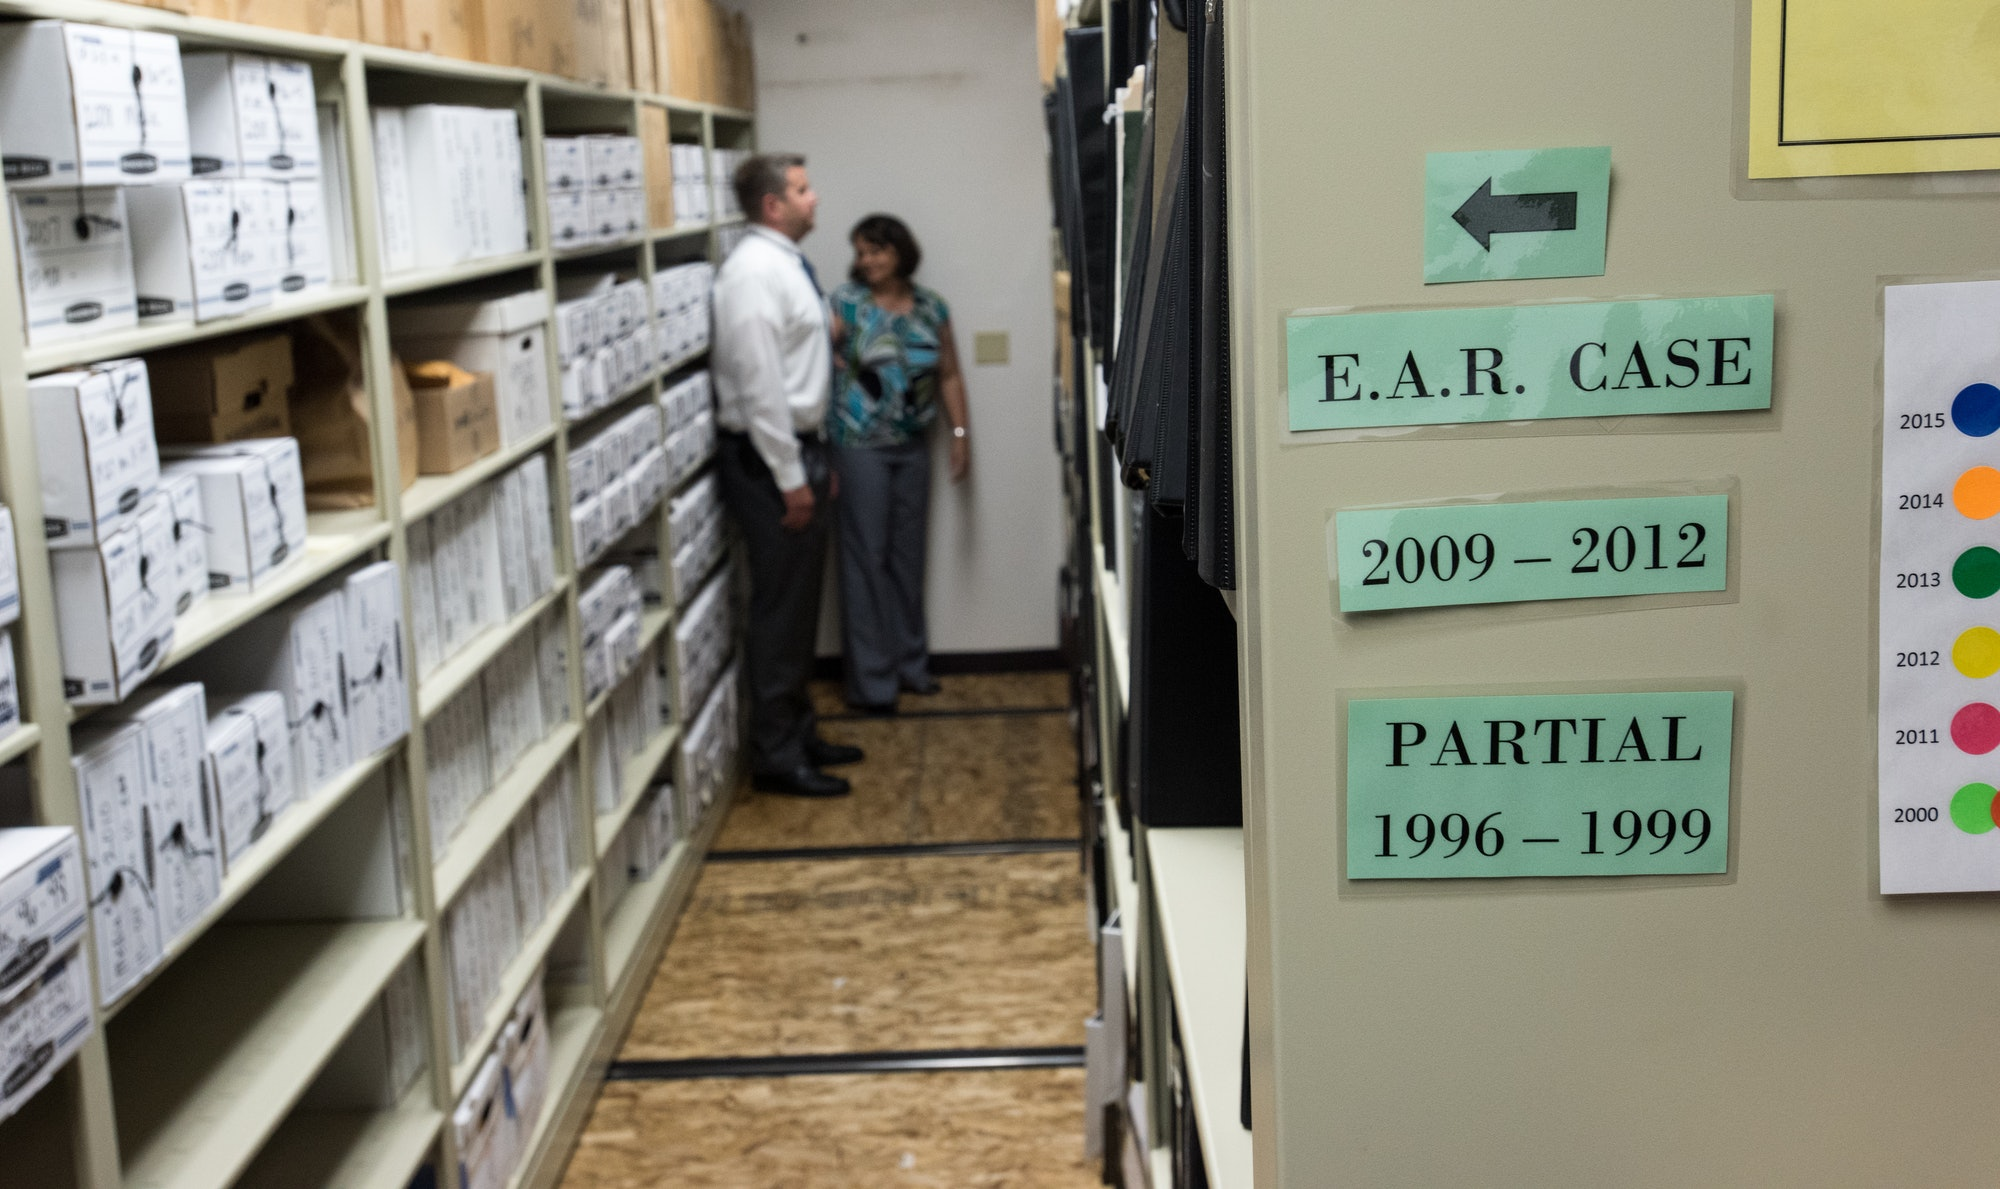 FBI agents in an evidence room during an investigation into the decades-old East Area Rapist/Golden State Killer case.